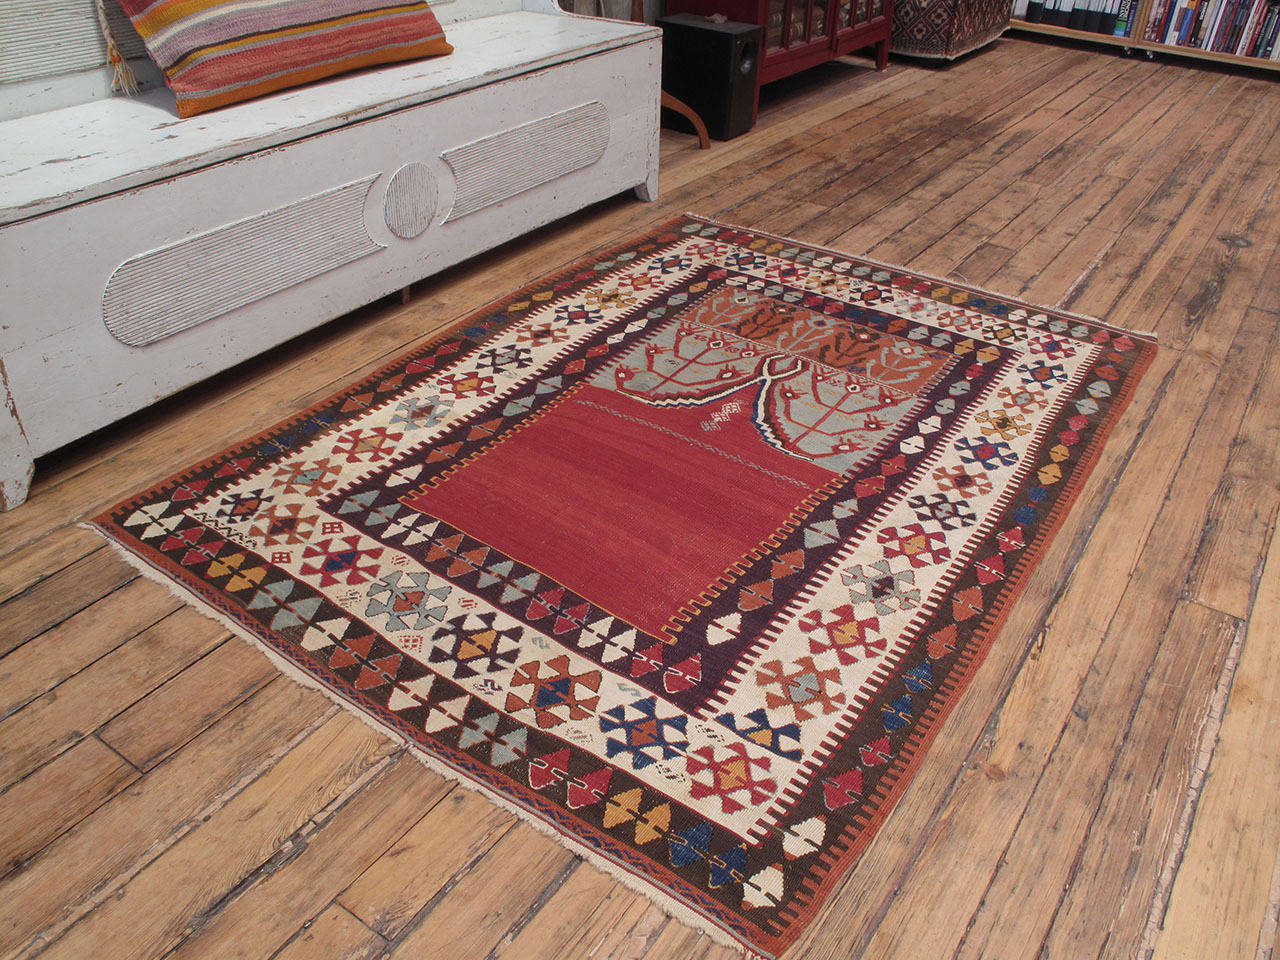 A beautiful antique Kilim from Central Turkey featuring the ever-popular prayer arch, or